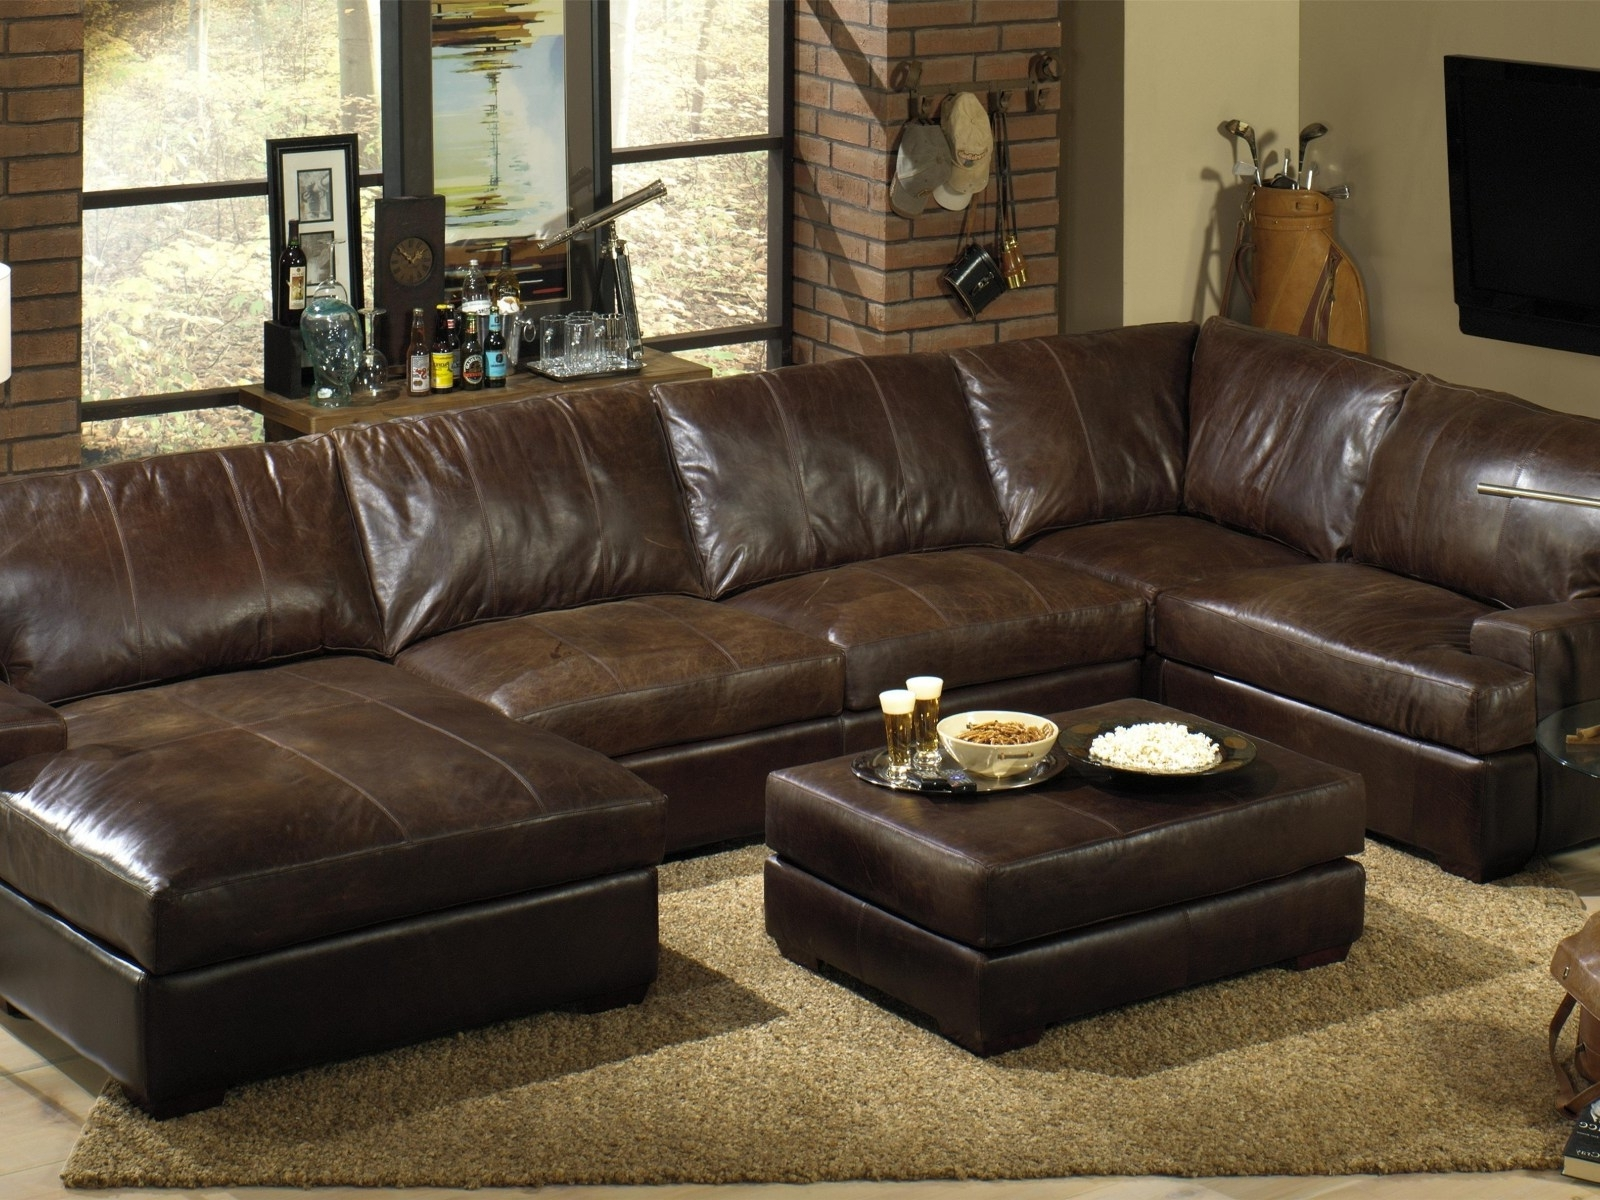 Chaise Lounge Sectional Sofas For Well Known ▻ Sofa : 39 Sectional Sofa With Chaise Lounge Leather Sectional (View 8 of 15)